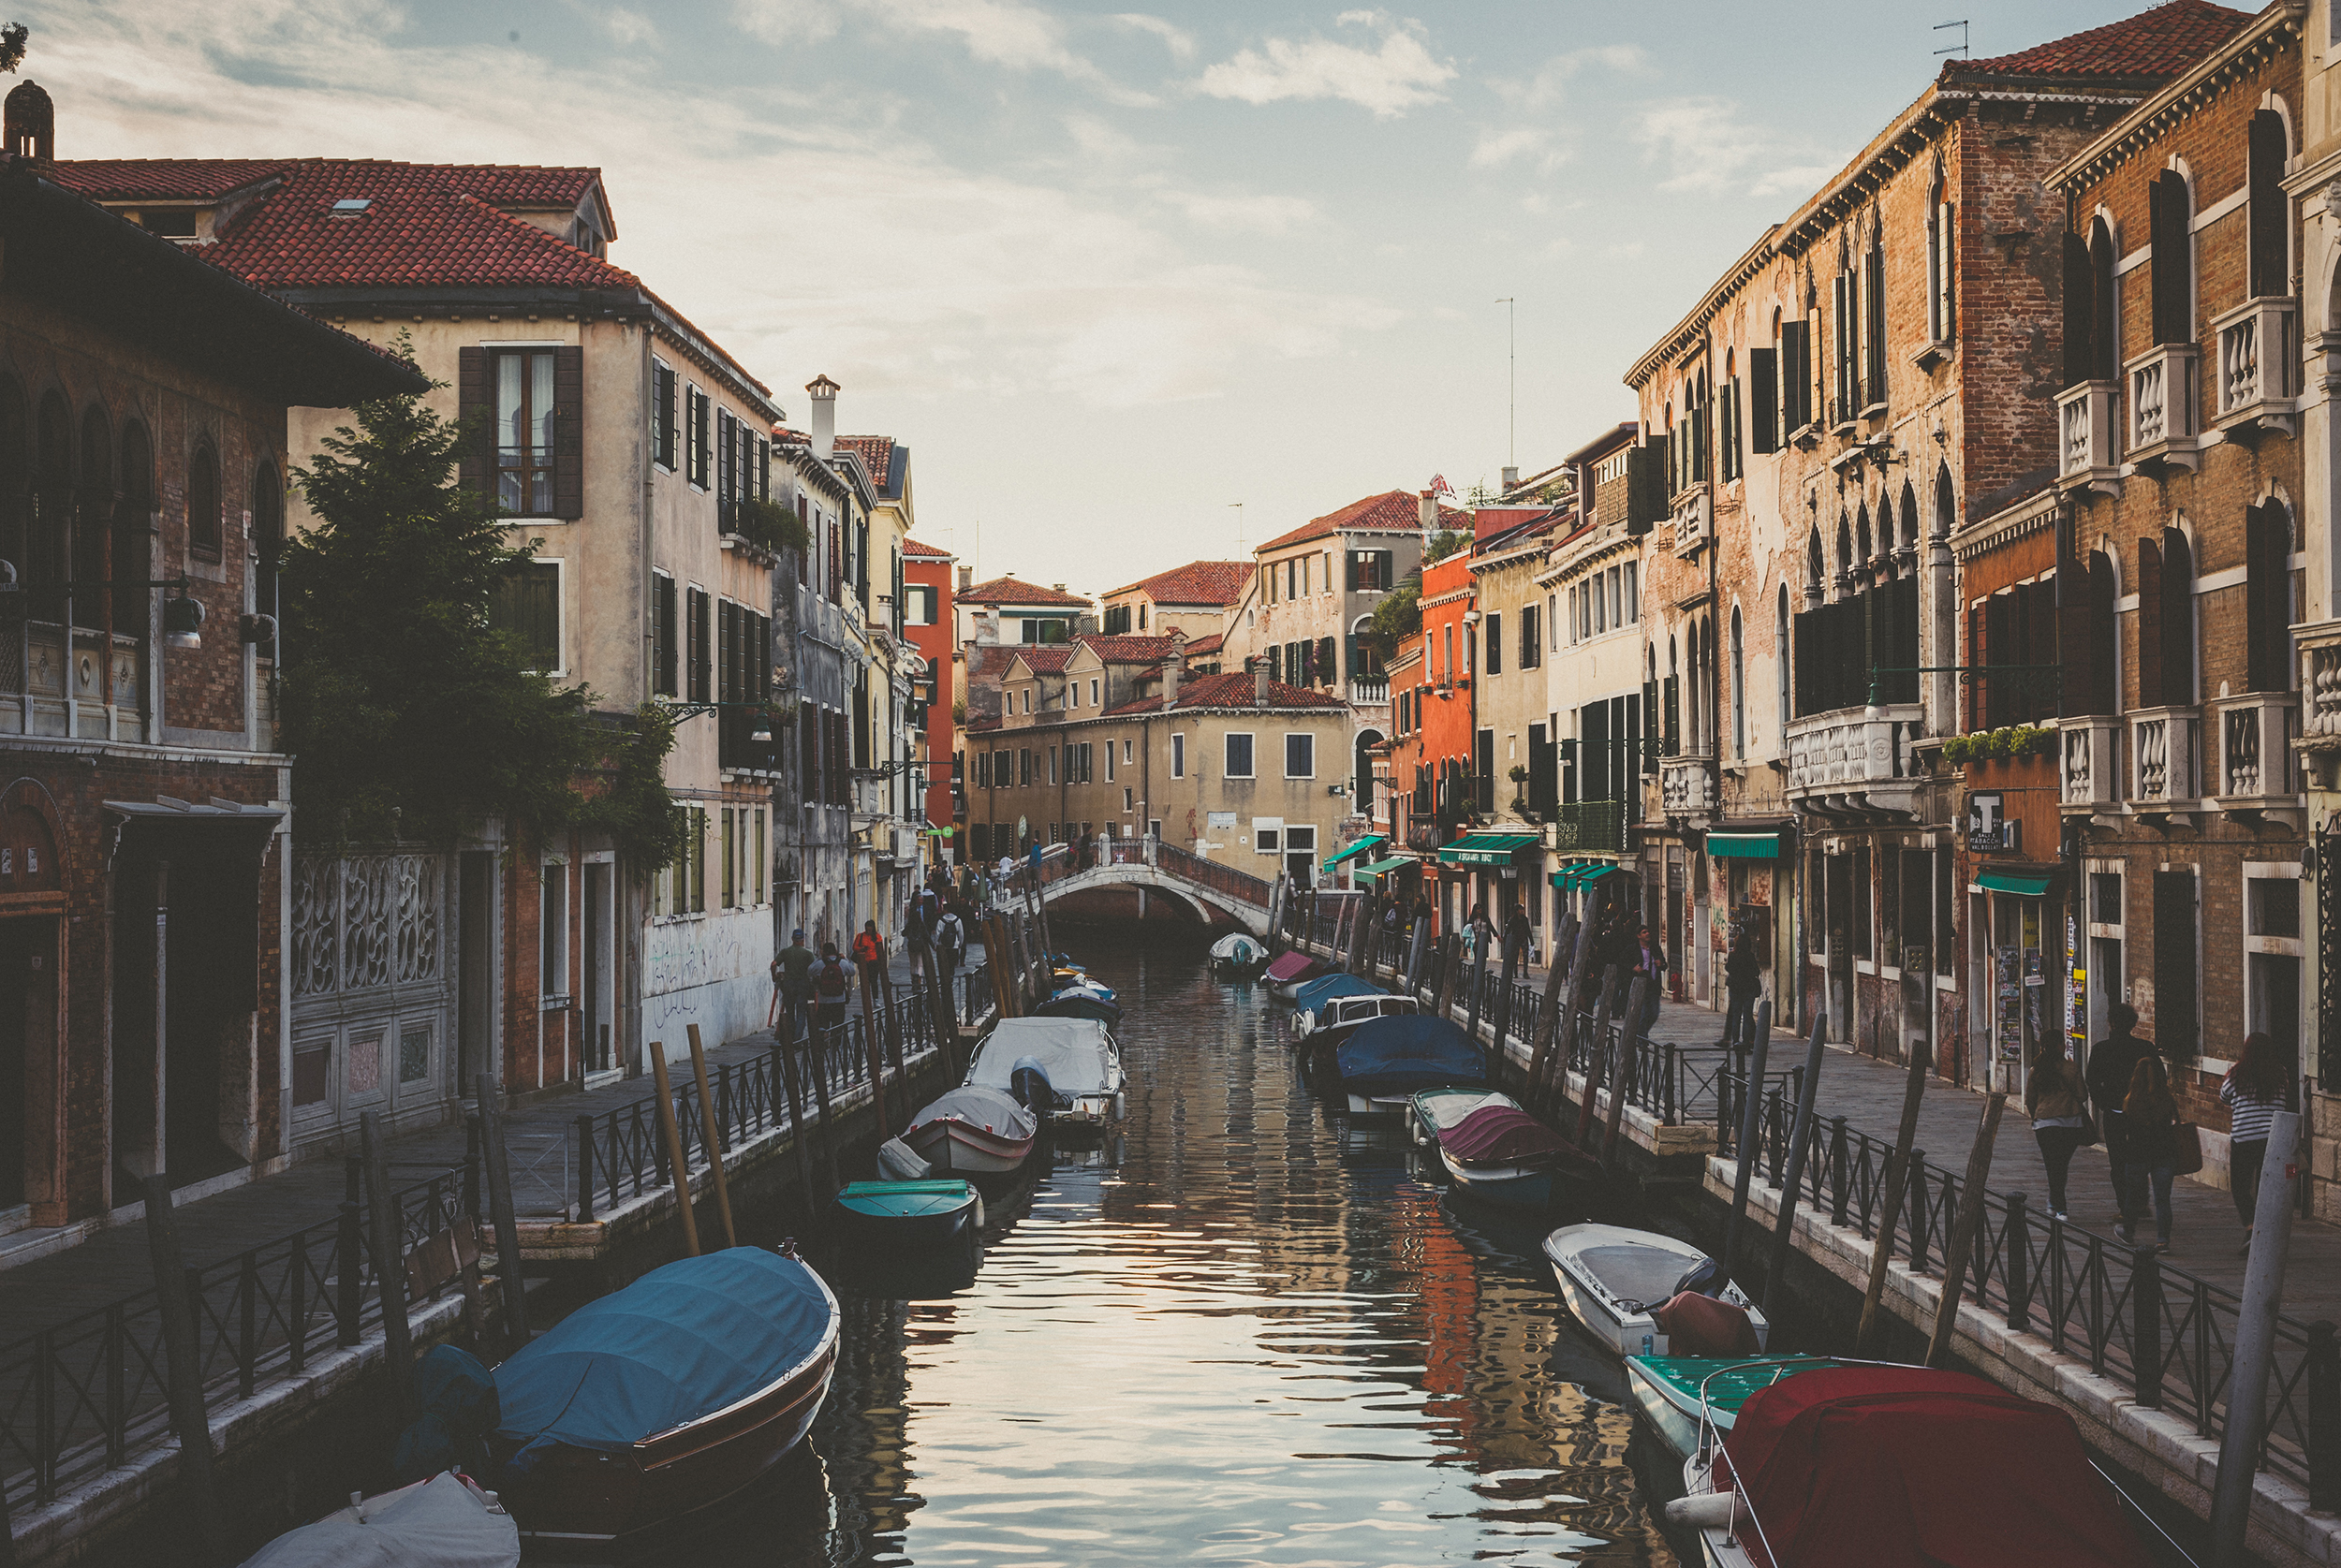 KC_Lifestyle_Photographer_OutdoorPhotography_Adventure_Photography_Venice_Italy03.jpg